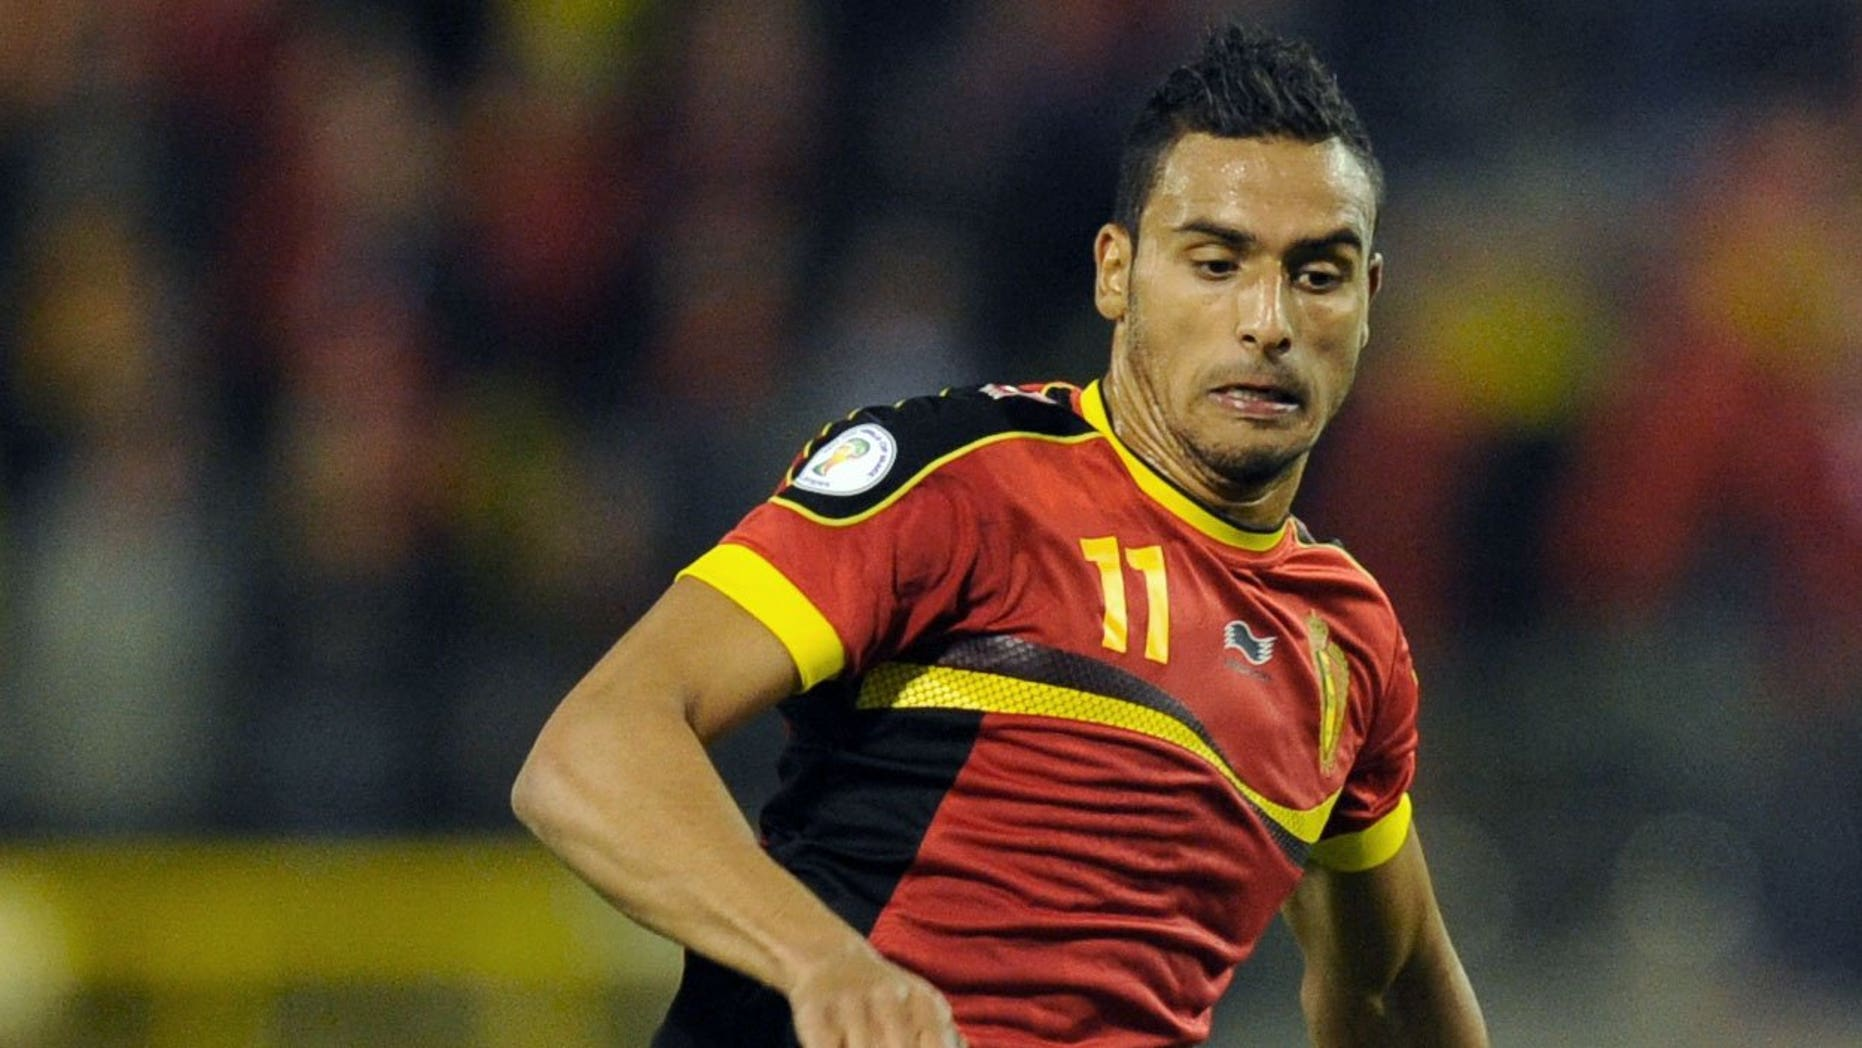 Belgium national football team's Nacer Chadli runs with the ball during the 2014 World Cup qualifying football match in Brussels on October 16, 2012. Tottenham are set to sign the FC Twente winger after agreeing a fee for the Belgian international.